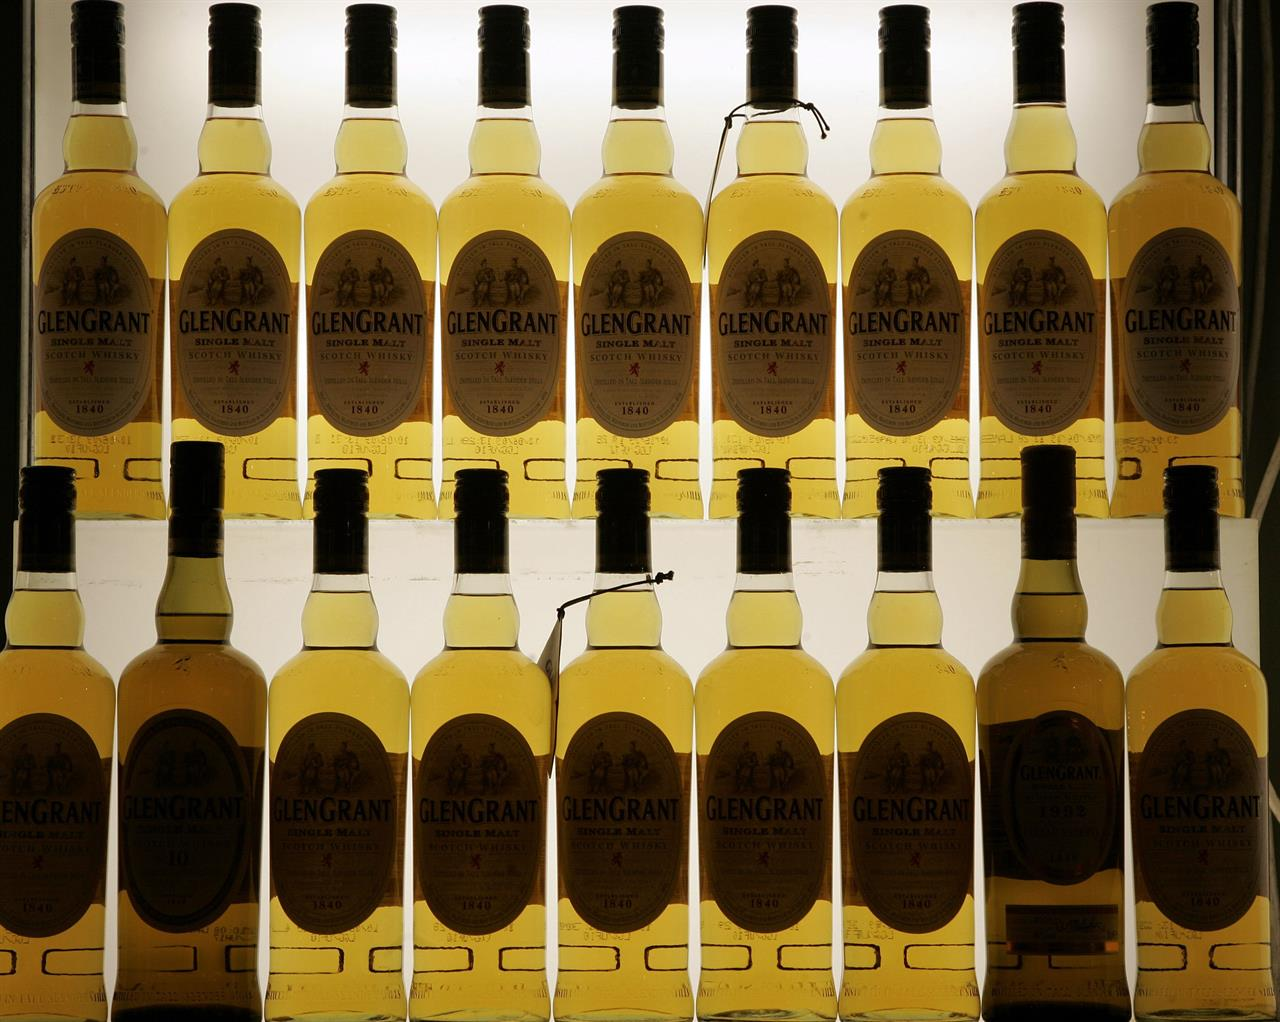 FILE- This Friday, Nov. 13, 2009, file photo, shows Scotch bottles in Cologne, Germany. Scotch whisky makers are breathing a sigh of relief after the United States agreed to suspend tariffs on one of Scotland's main exports. U.S. President Donald Trump imposed a 25% tariff on single malt Scotch whisky in 2019 as part of a trade dispute between the U.S. and EU countries over aerospace subsidies. (AP Photo/Hermann J. Knippertz, File)